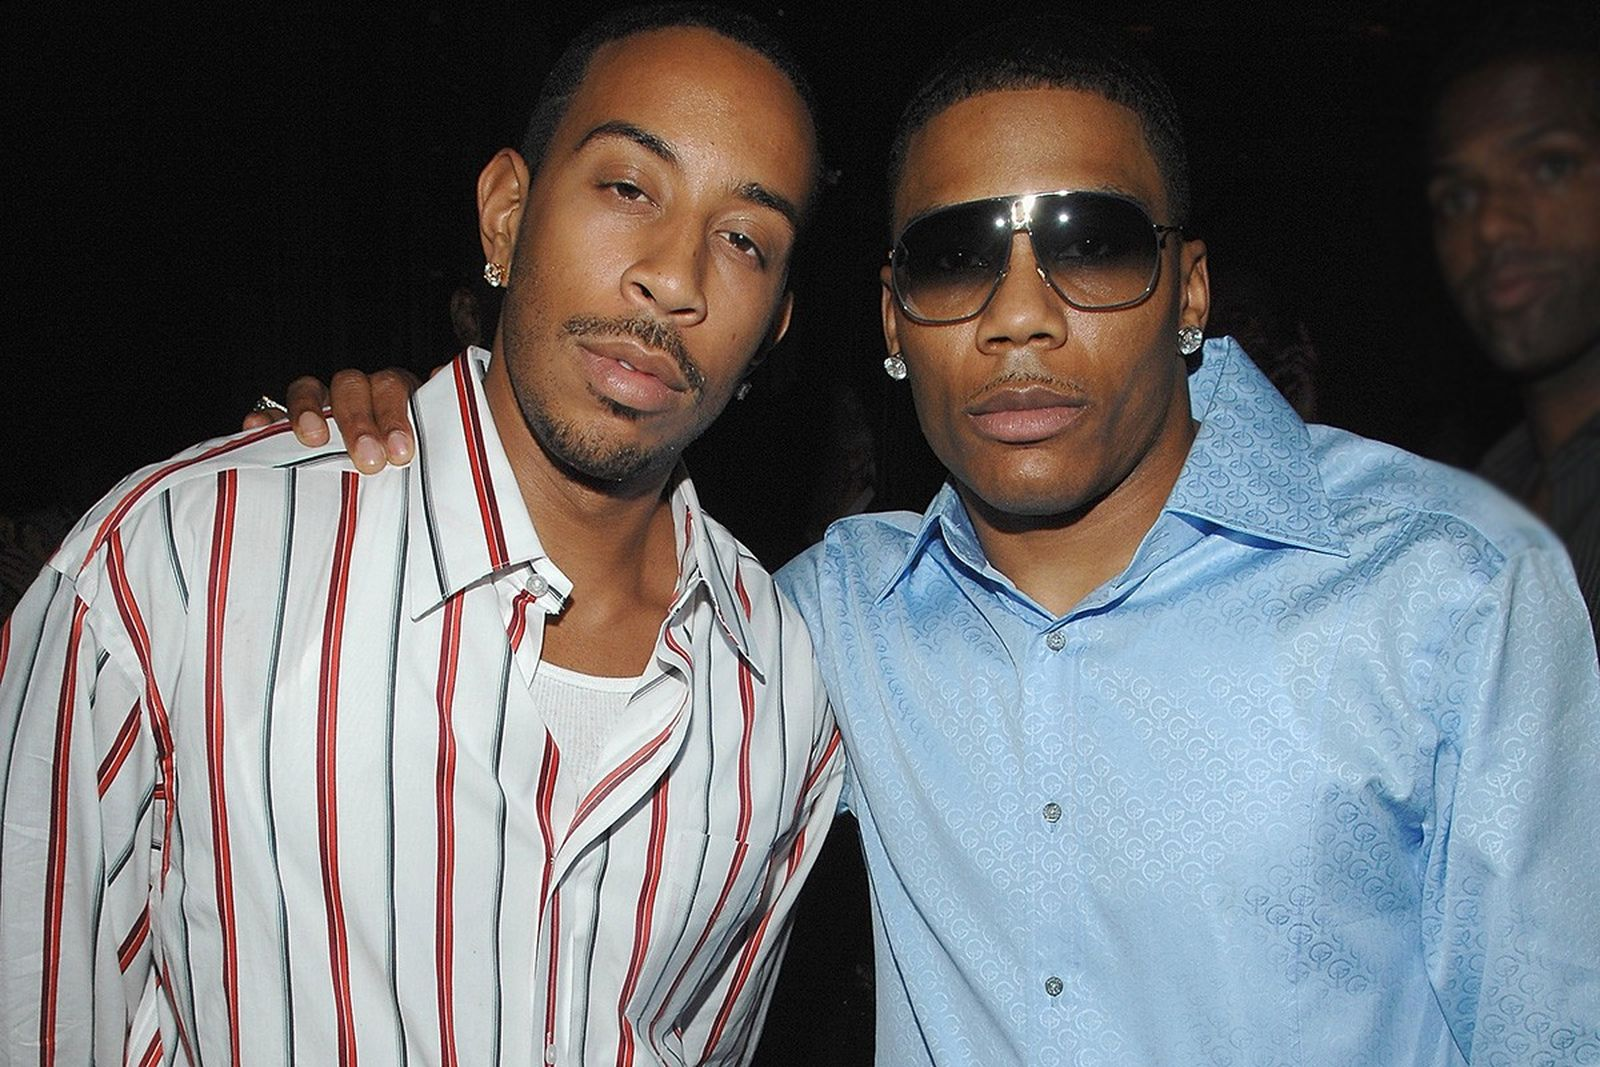 Nelly and ludacris pose at ushers fragrance launch